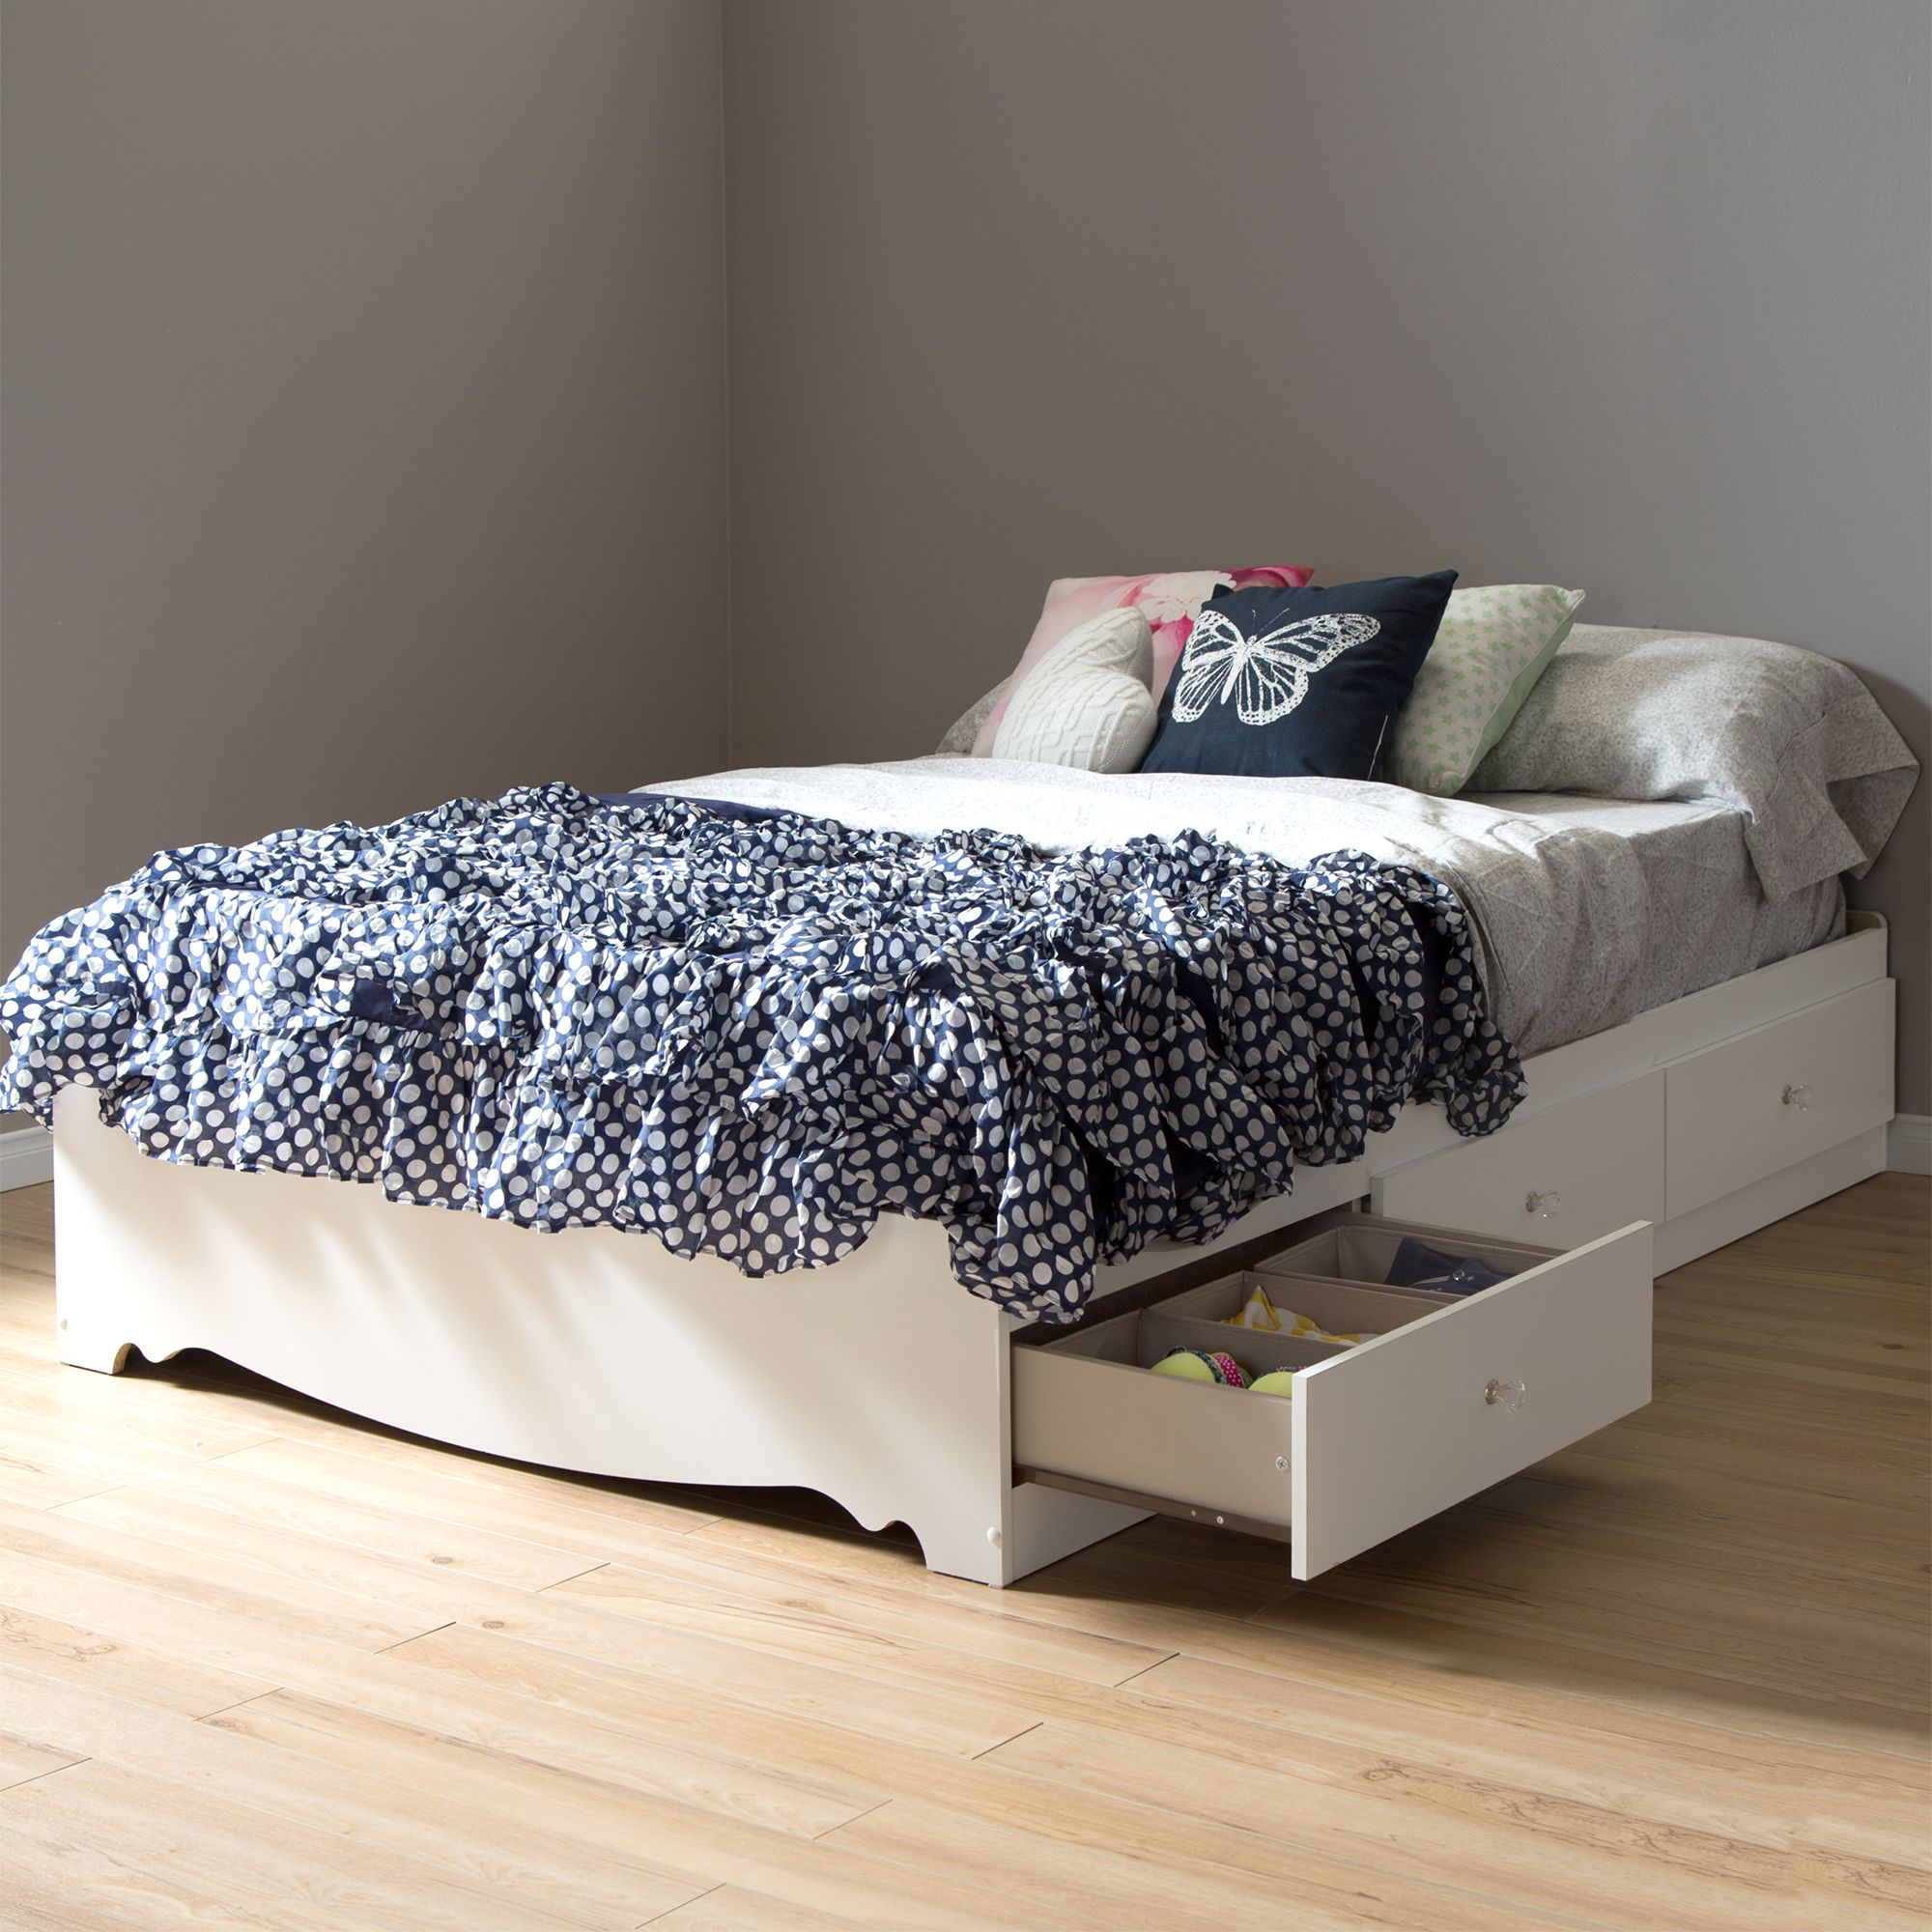 Home Platform bed with storage, Furniture, Bed with drawers